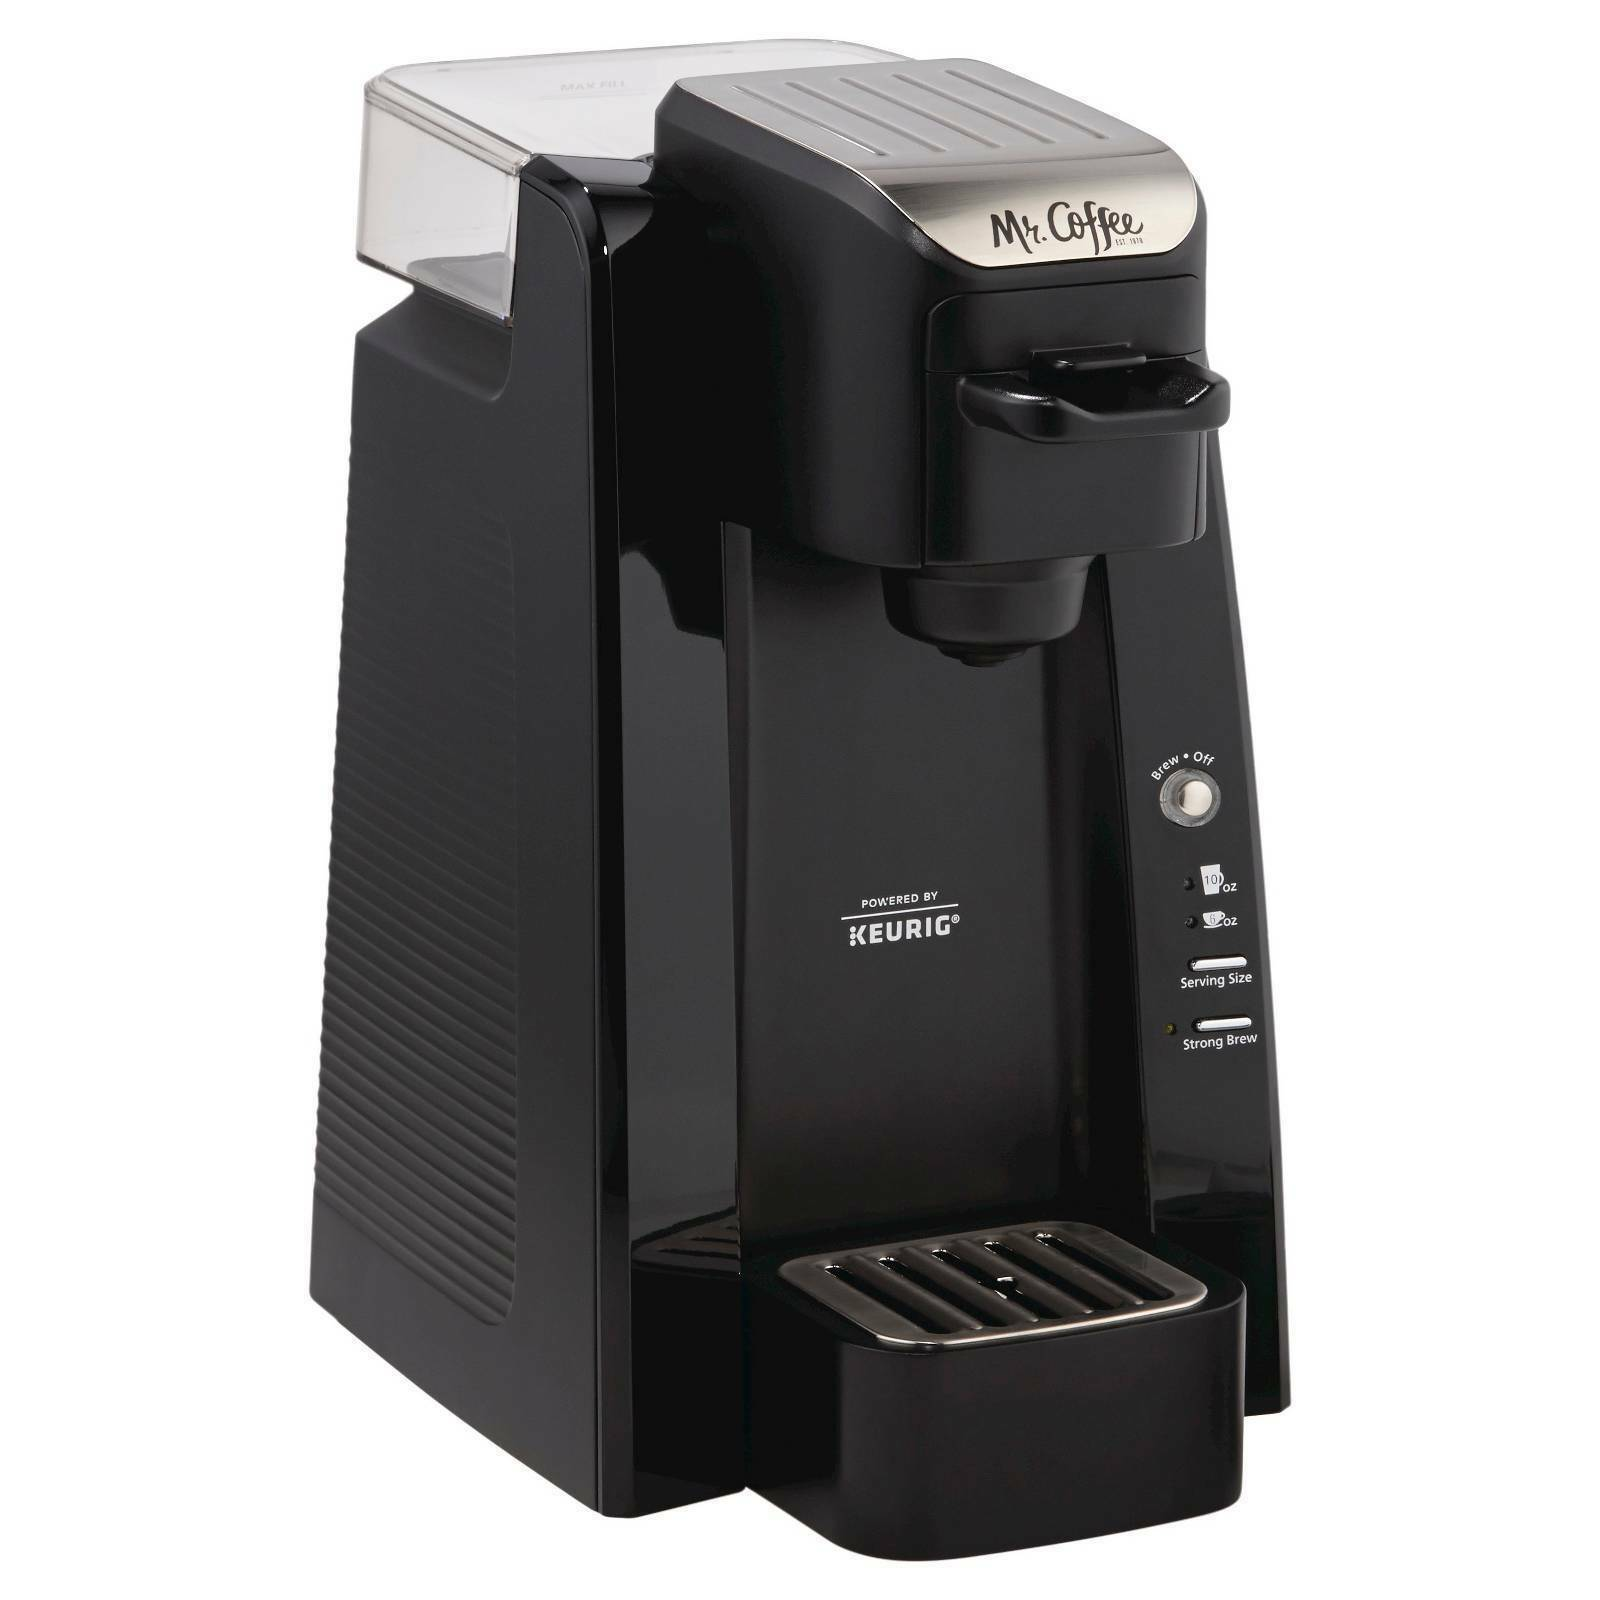 Mr. Coffee Bvmc-SC500-1 Single K-Cup Système Brewing 24 oz (environ 680.38 g)